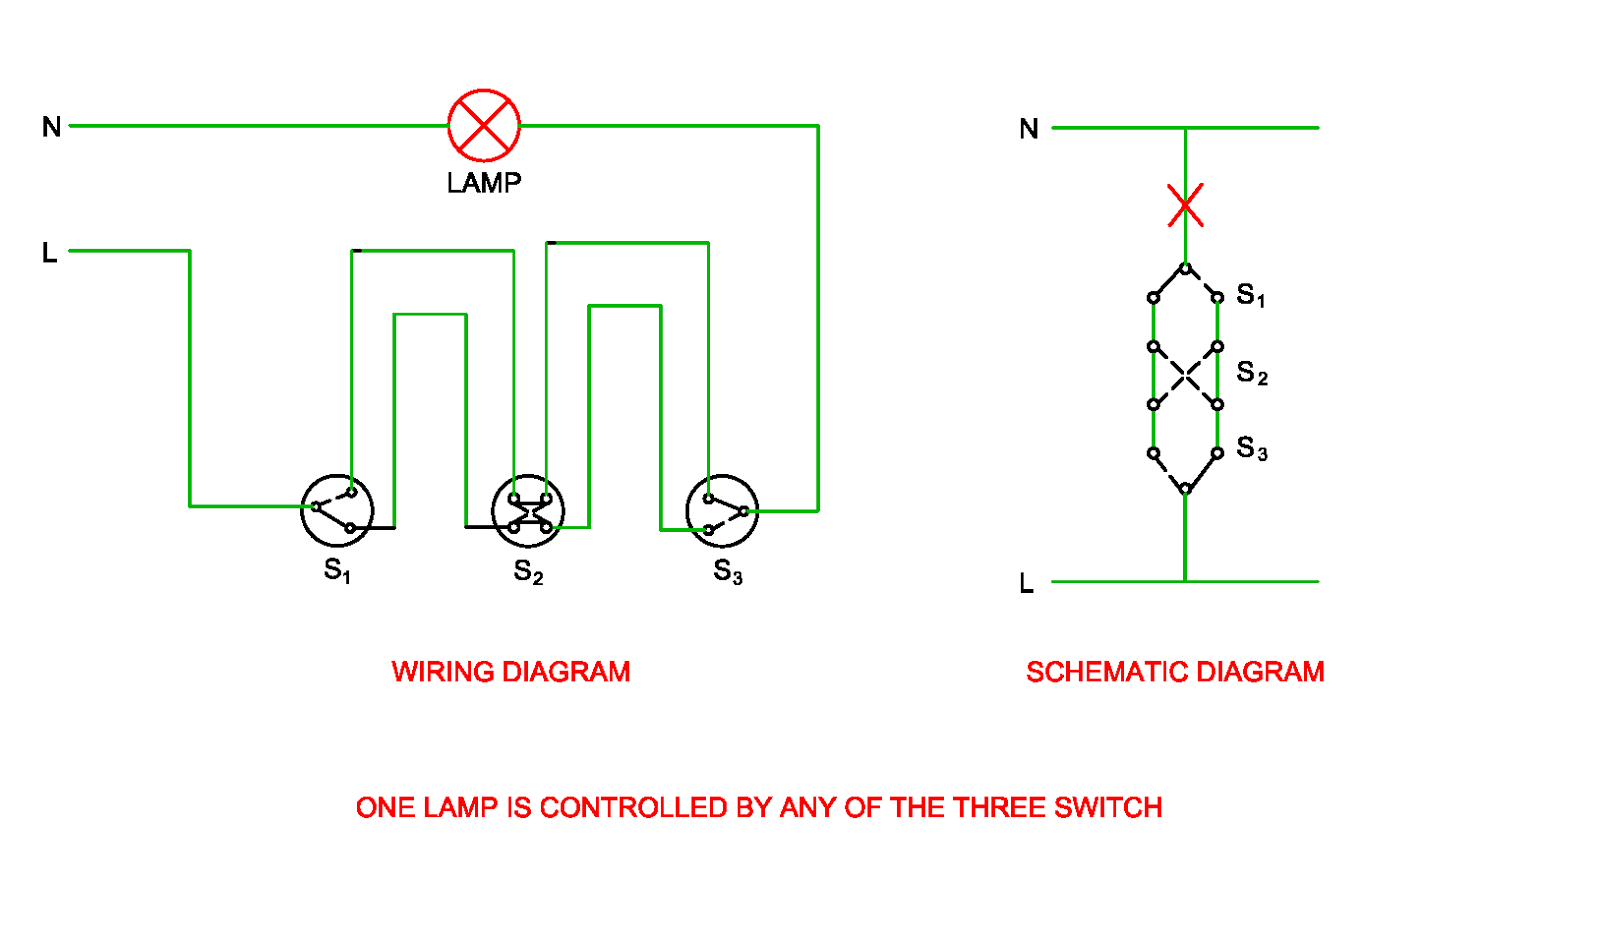 medium resolution of one lamp is controlled by three switches